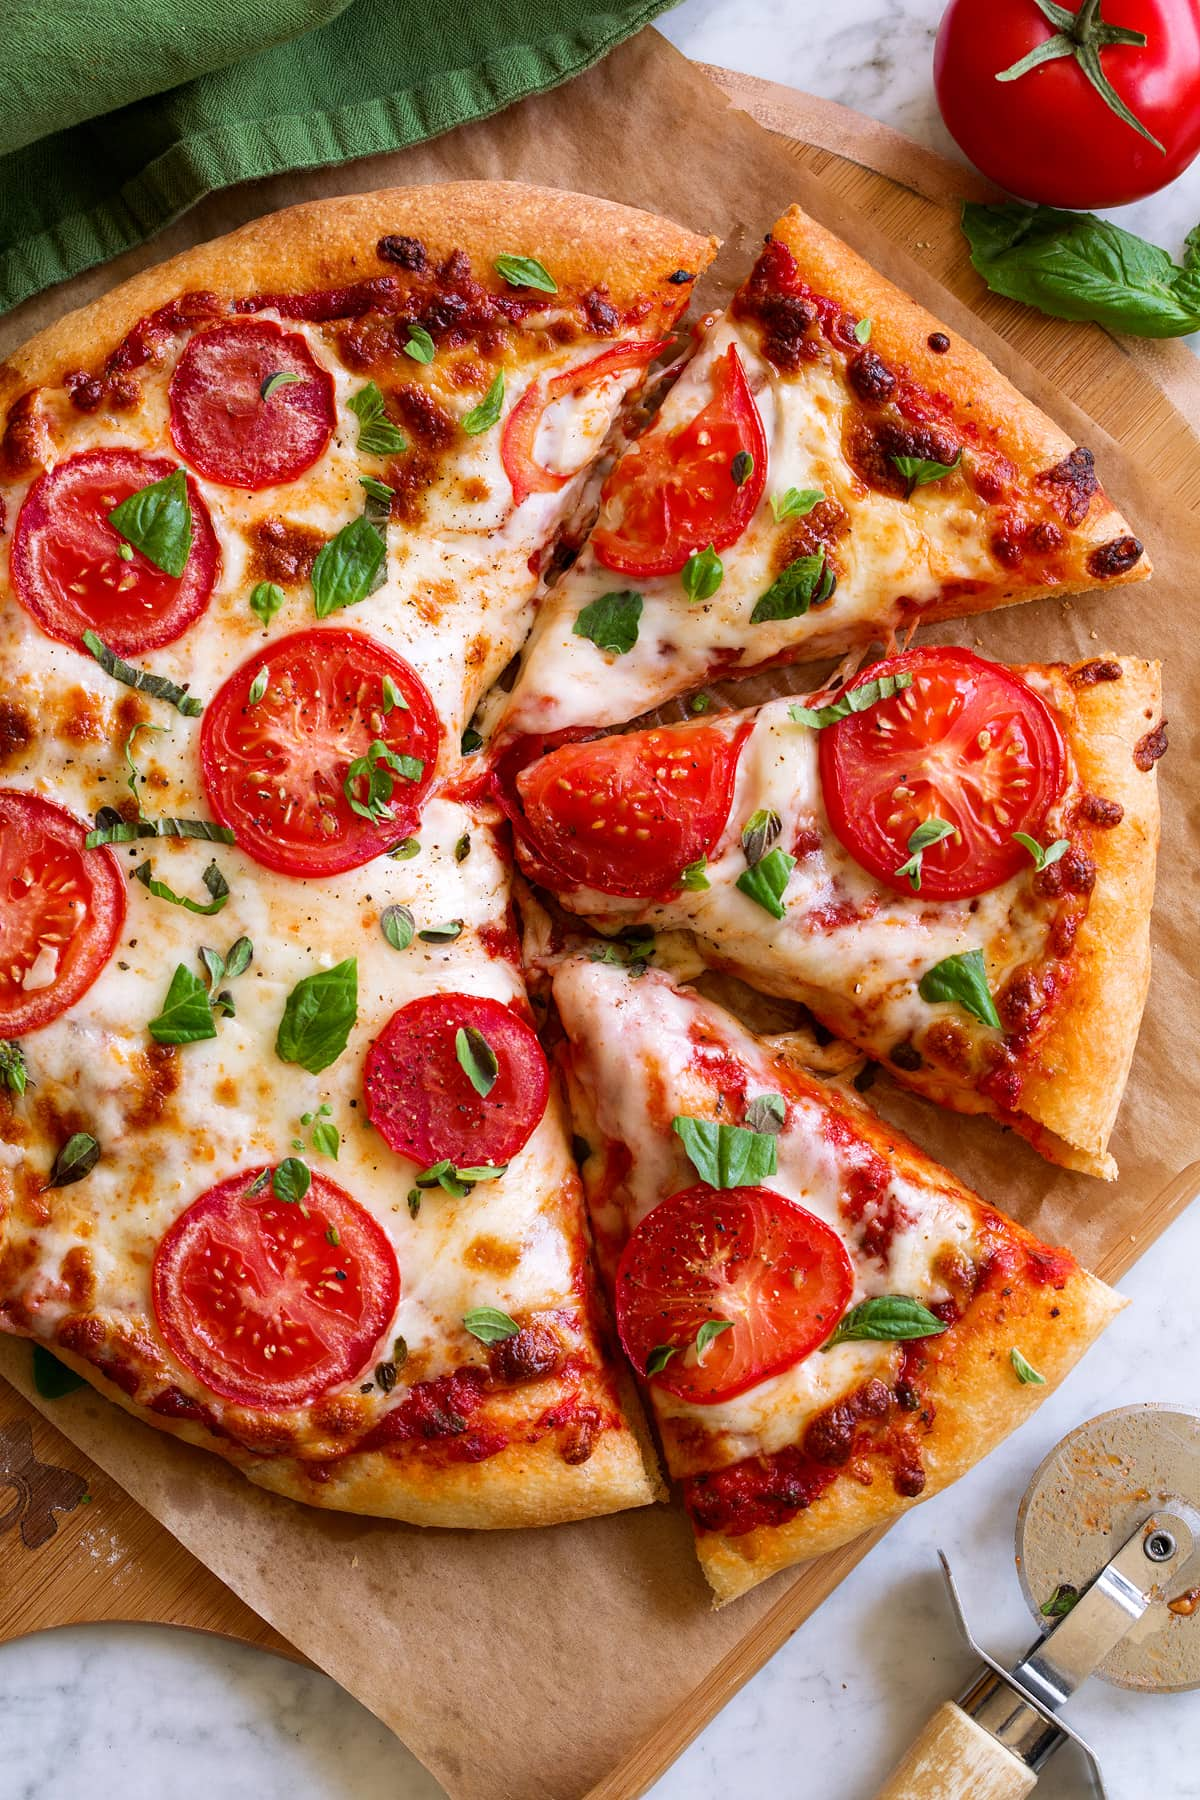 Pizza topped with red pizza sauce, mozzrella, tomatoes and herbs. It is cut into slices and sitting on parchment paper over a wooden pizza peel.